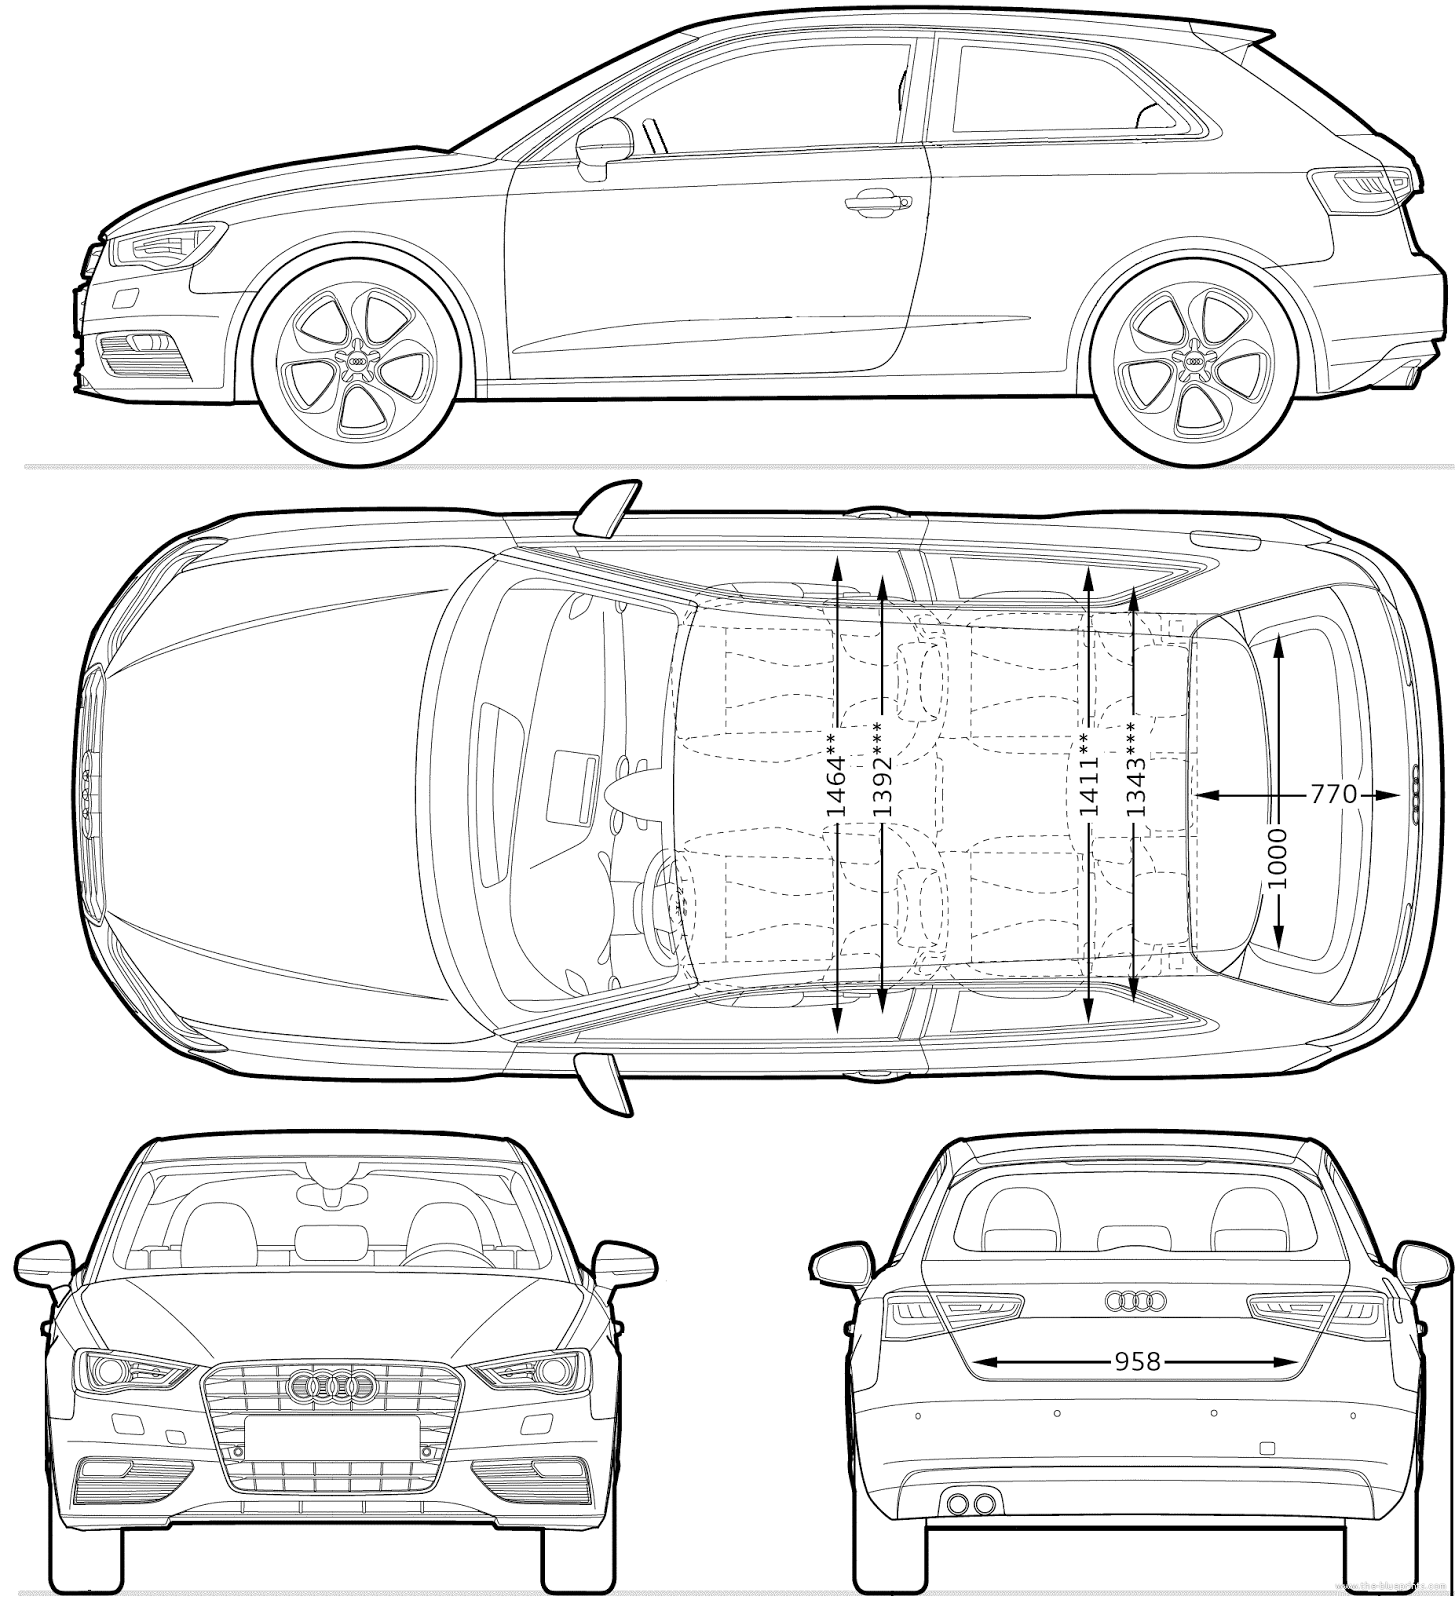 Most Loved Car Blueprints For 3d besides Cadillac Northstar Oil Filter Location moreover Most Loved Car Blueprints For 3d besides ShowAssembly furthermore Most Loved Car Blueprints For 3d Modeling. on bmw 6 series convertible